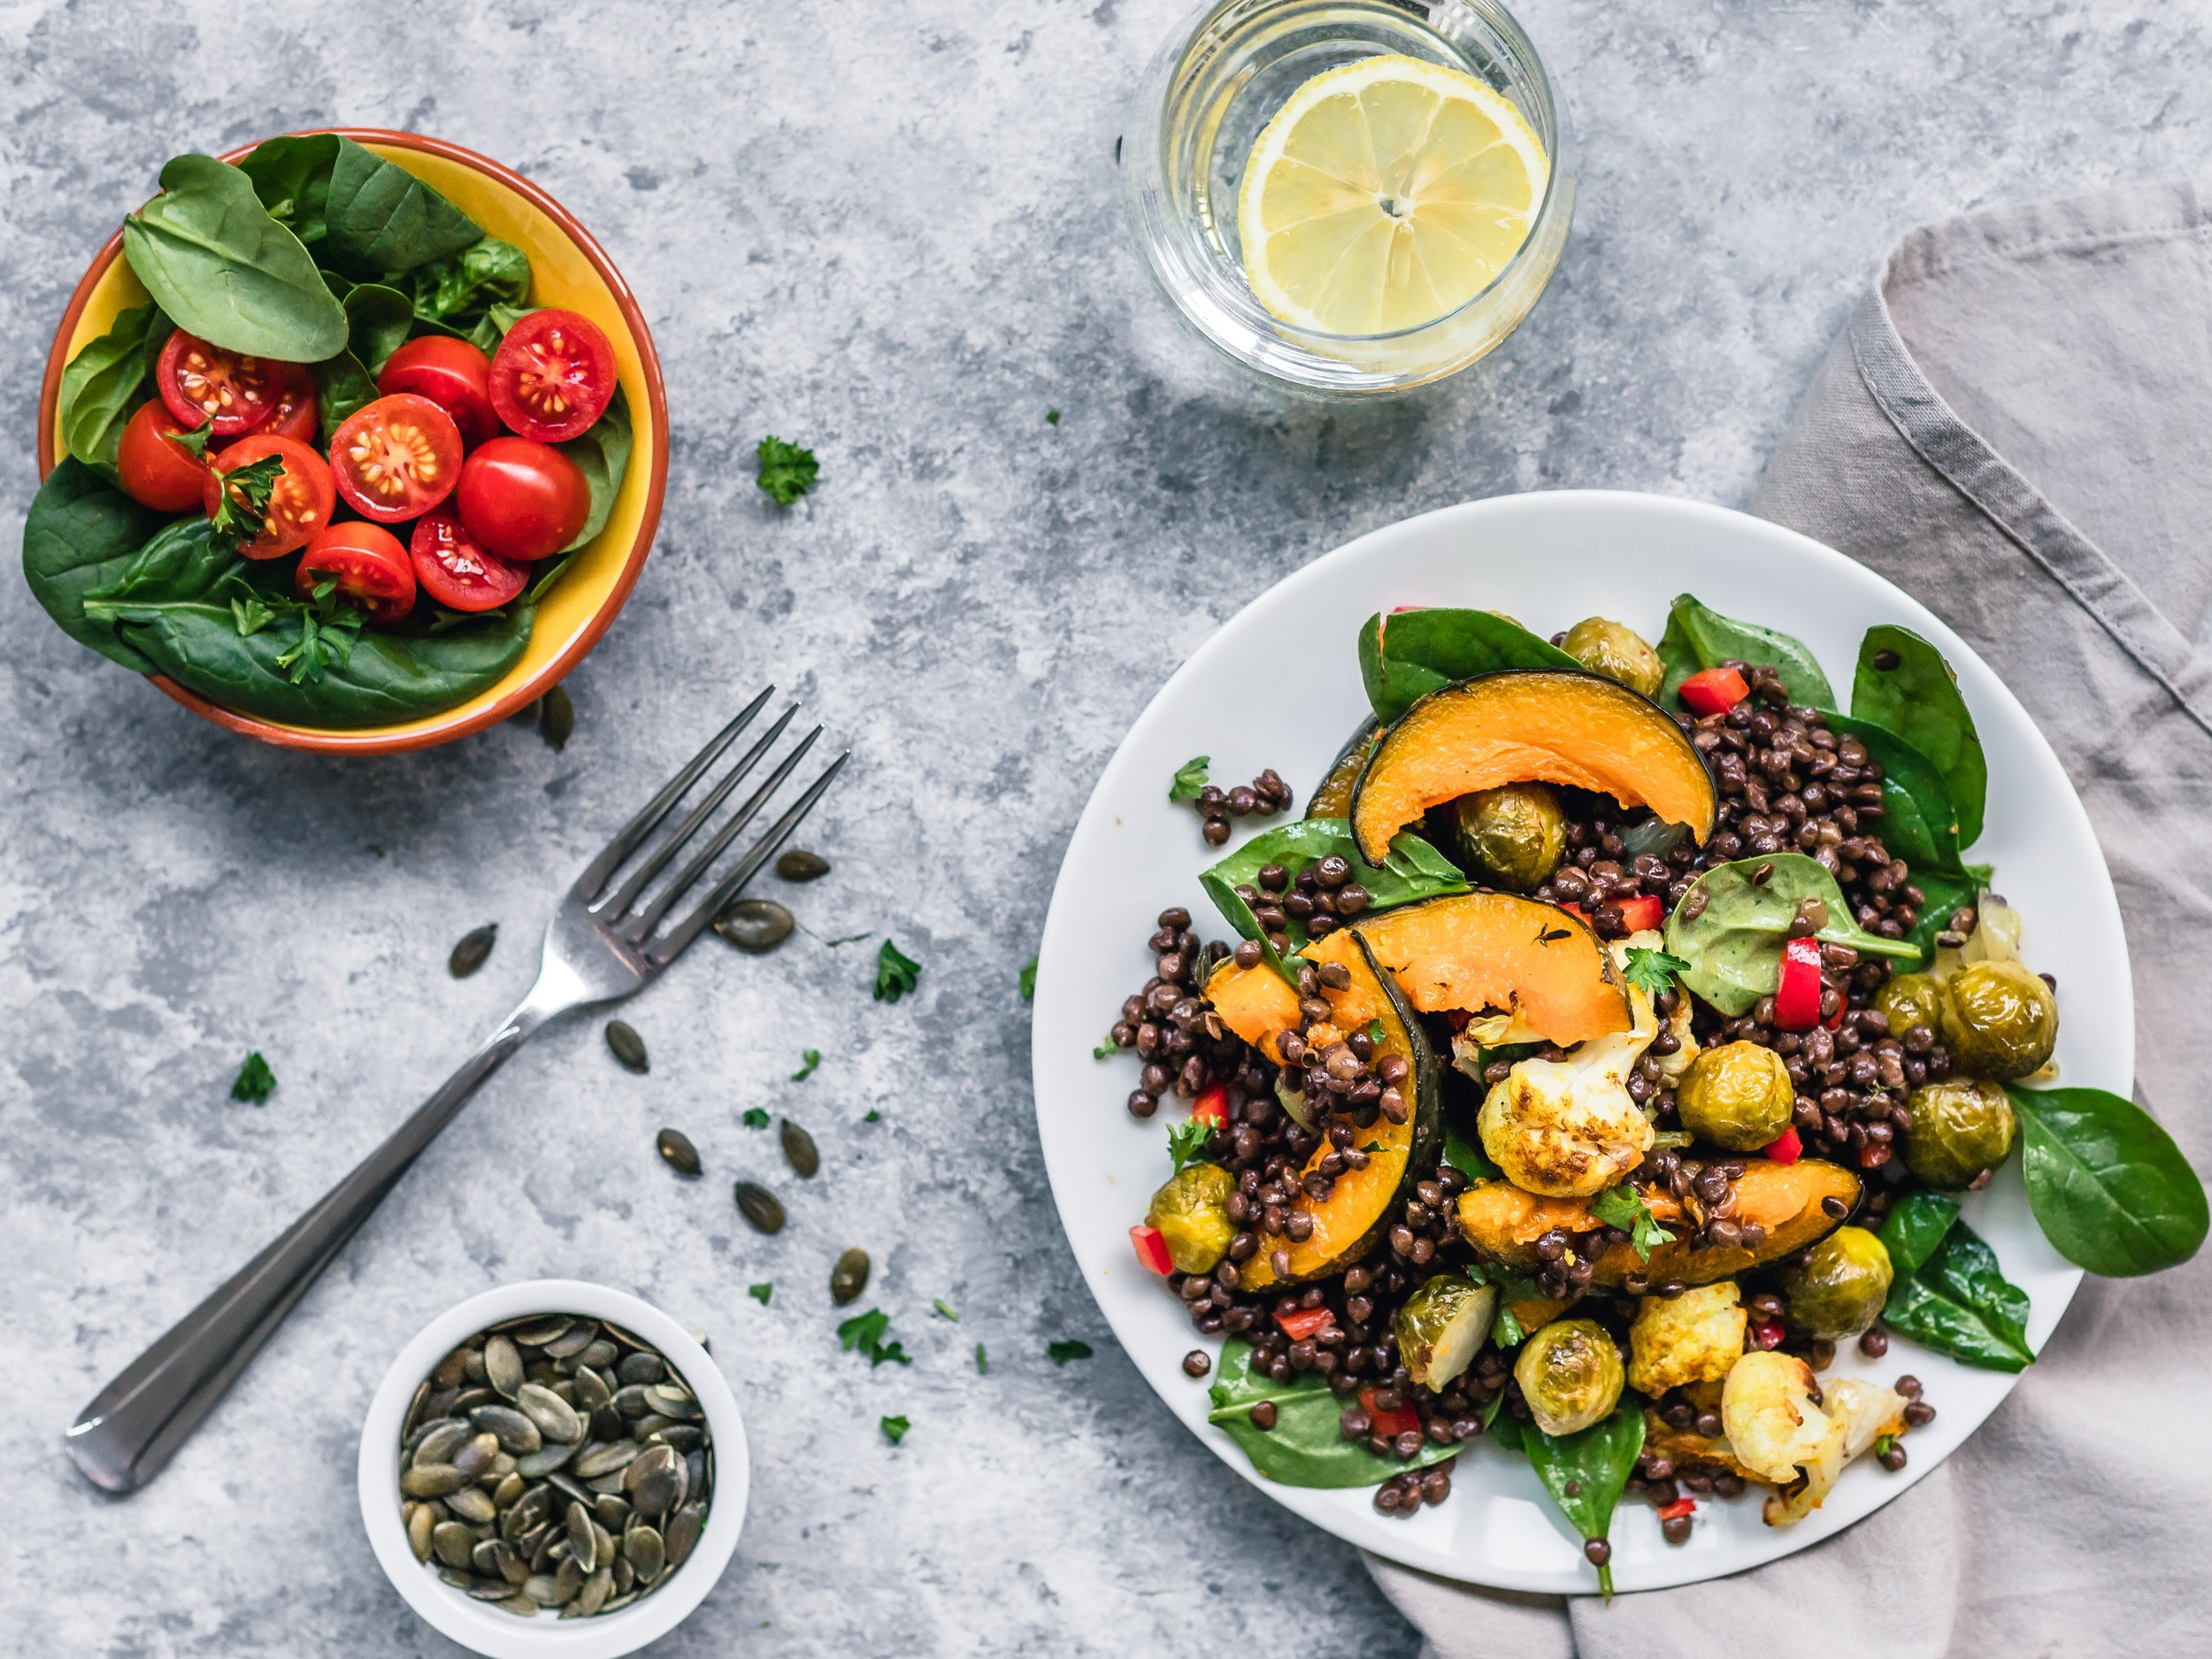 Lentils are an excellent source of plant-based protein. They are versatile and work as a main dish or side, in soups, and sprinkled on salads.